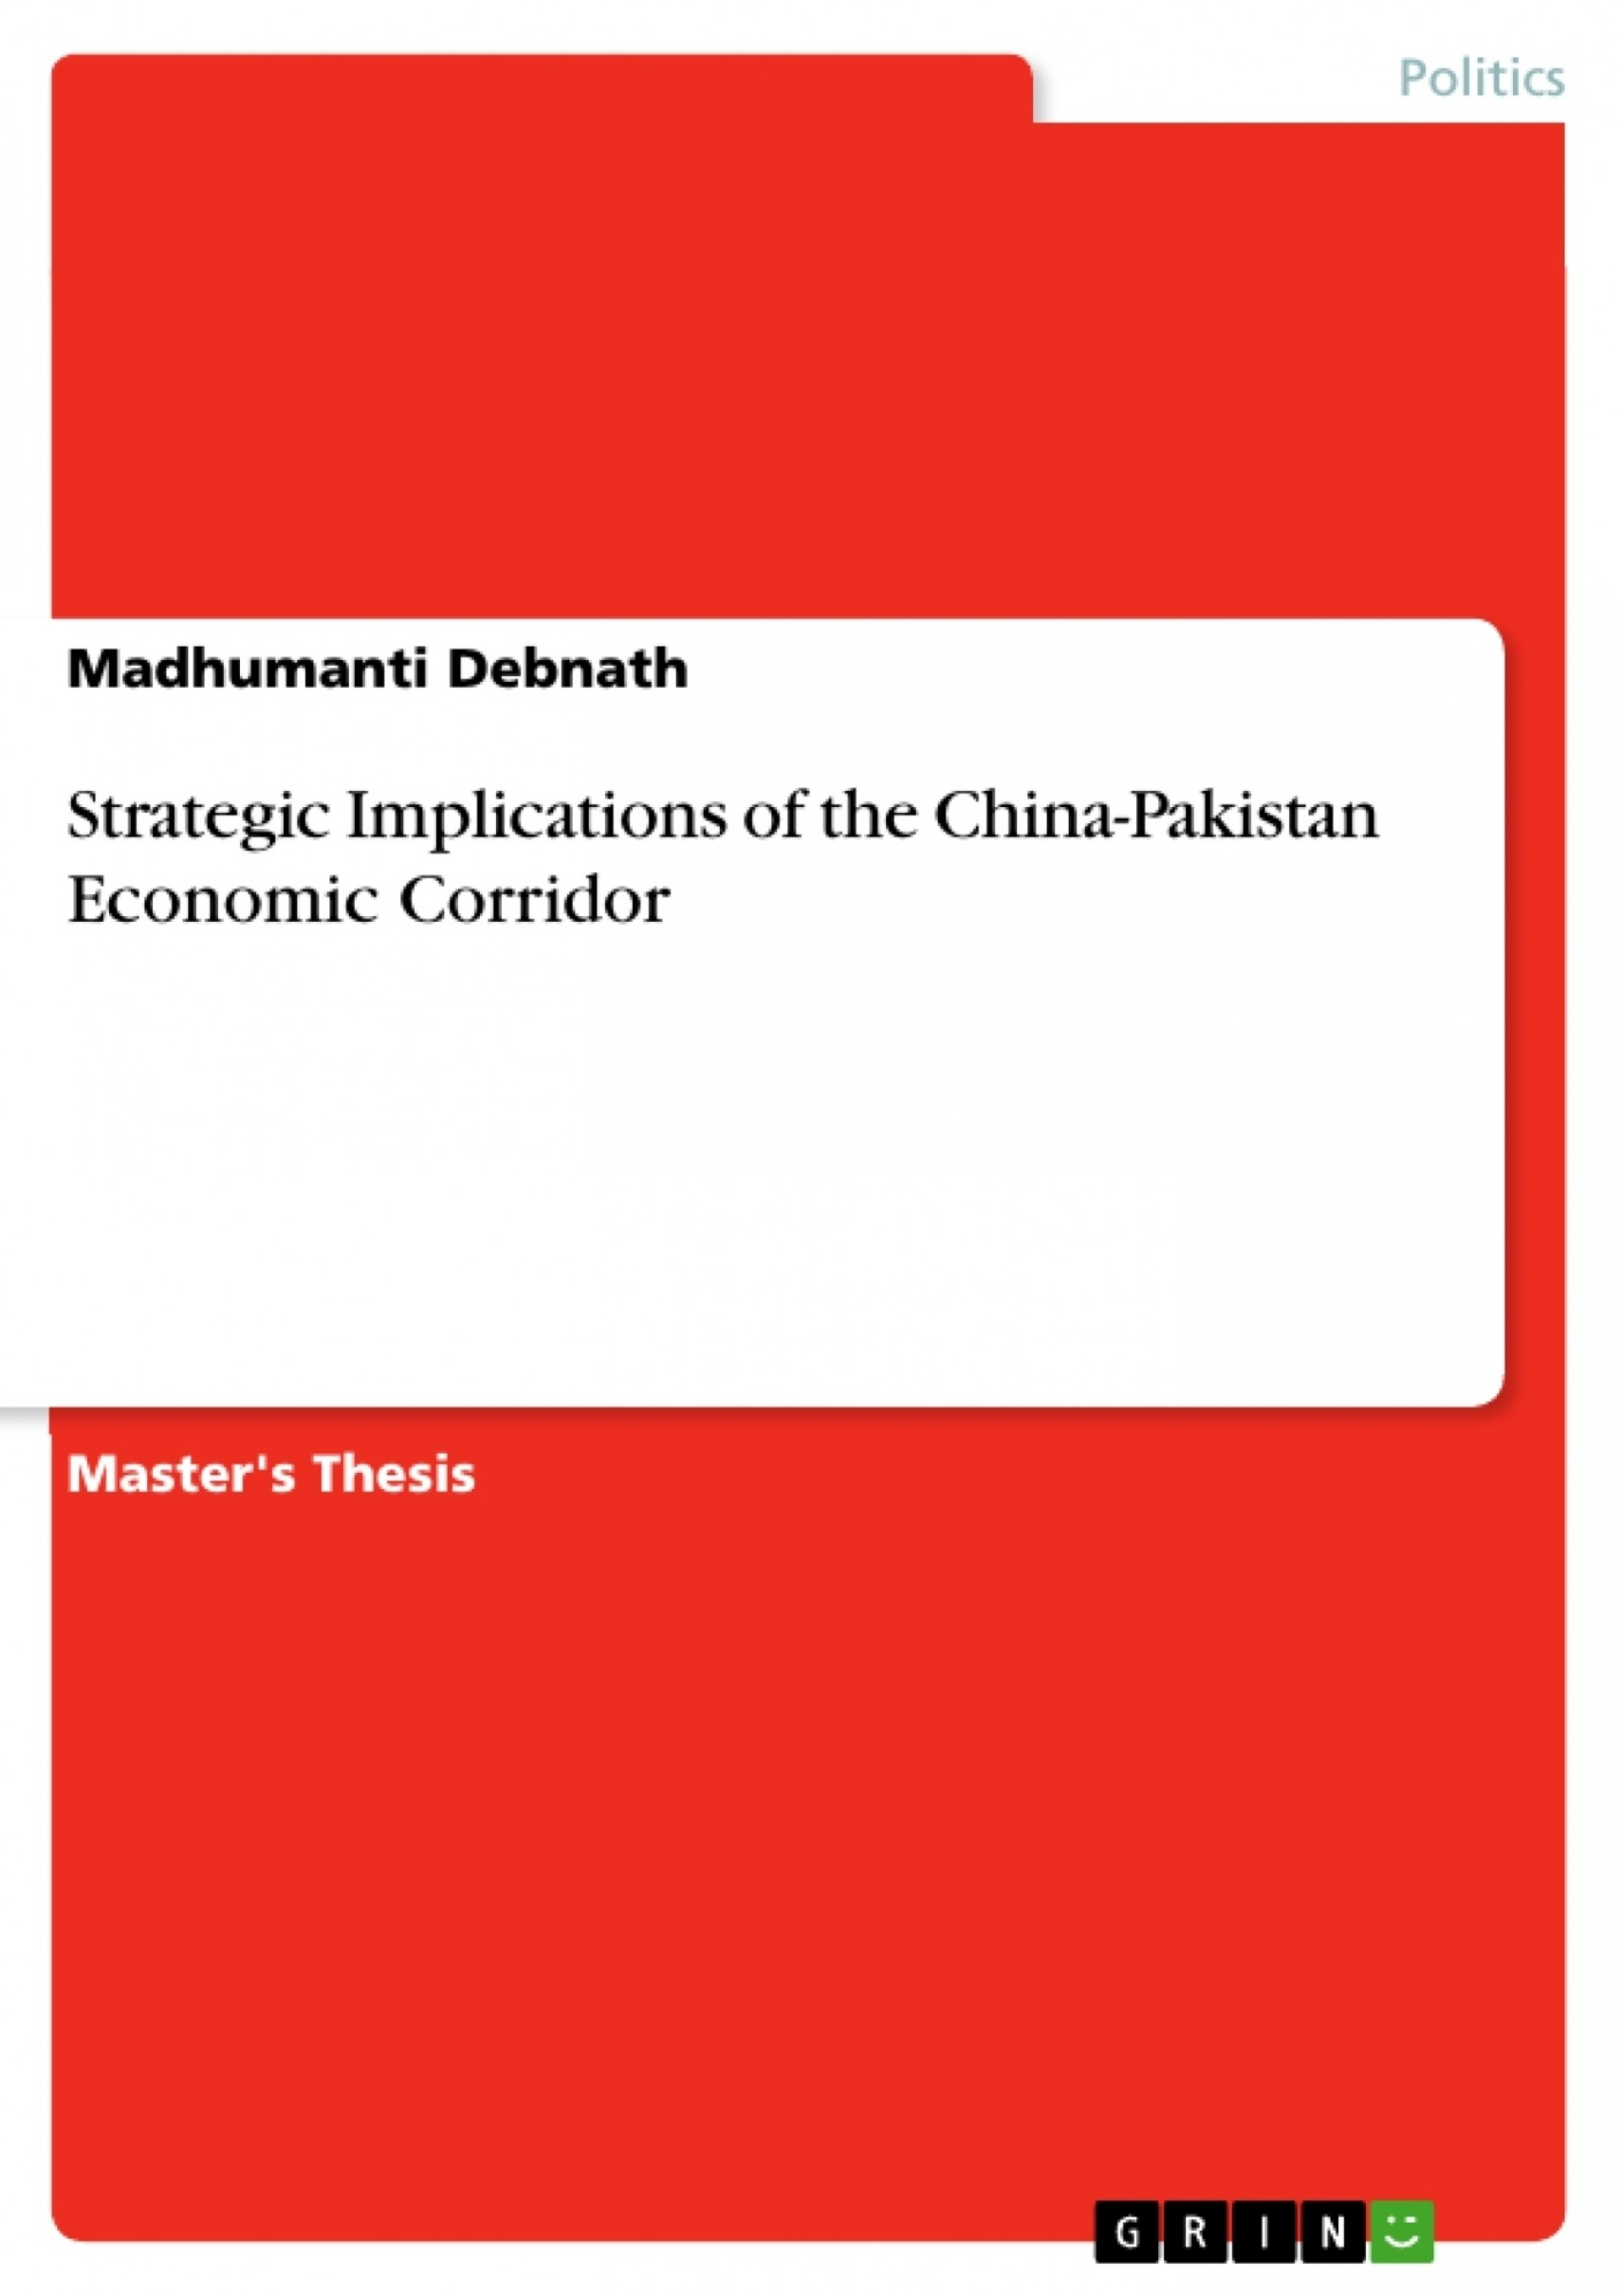 010 Chinese Economy Research Paper Topics 375337 0 Awful 1920